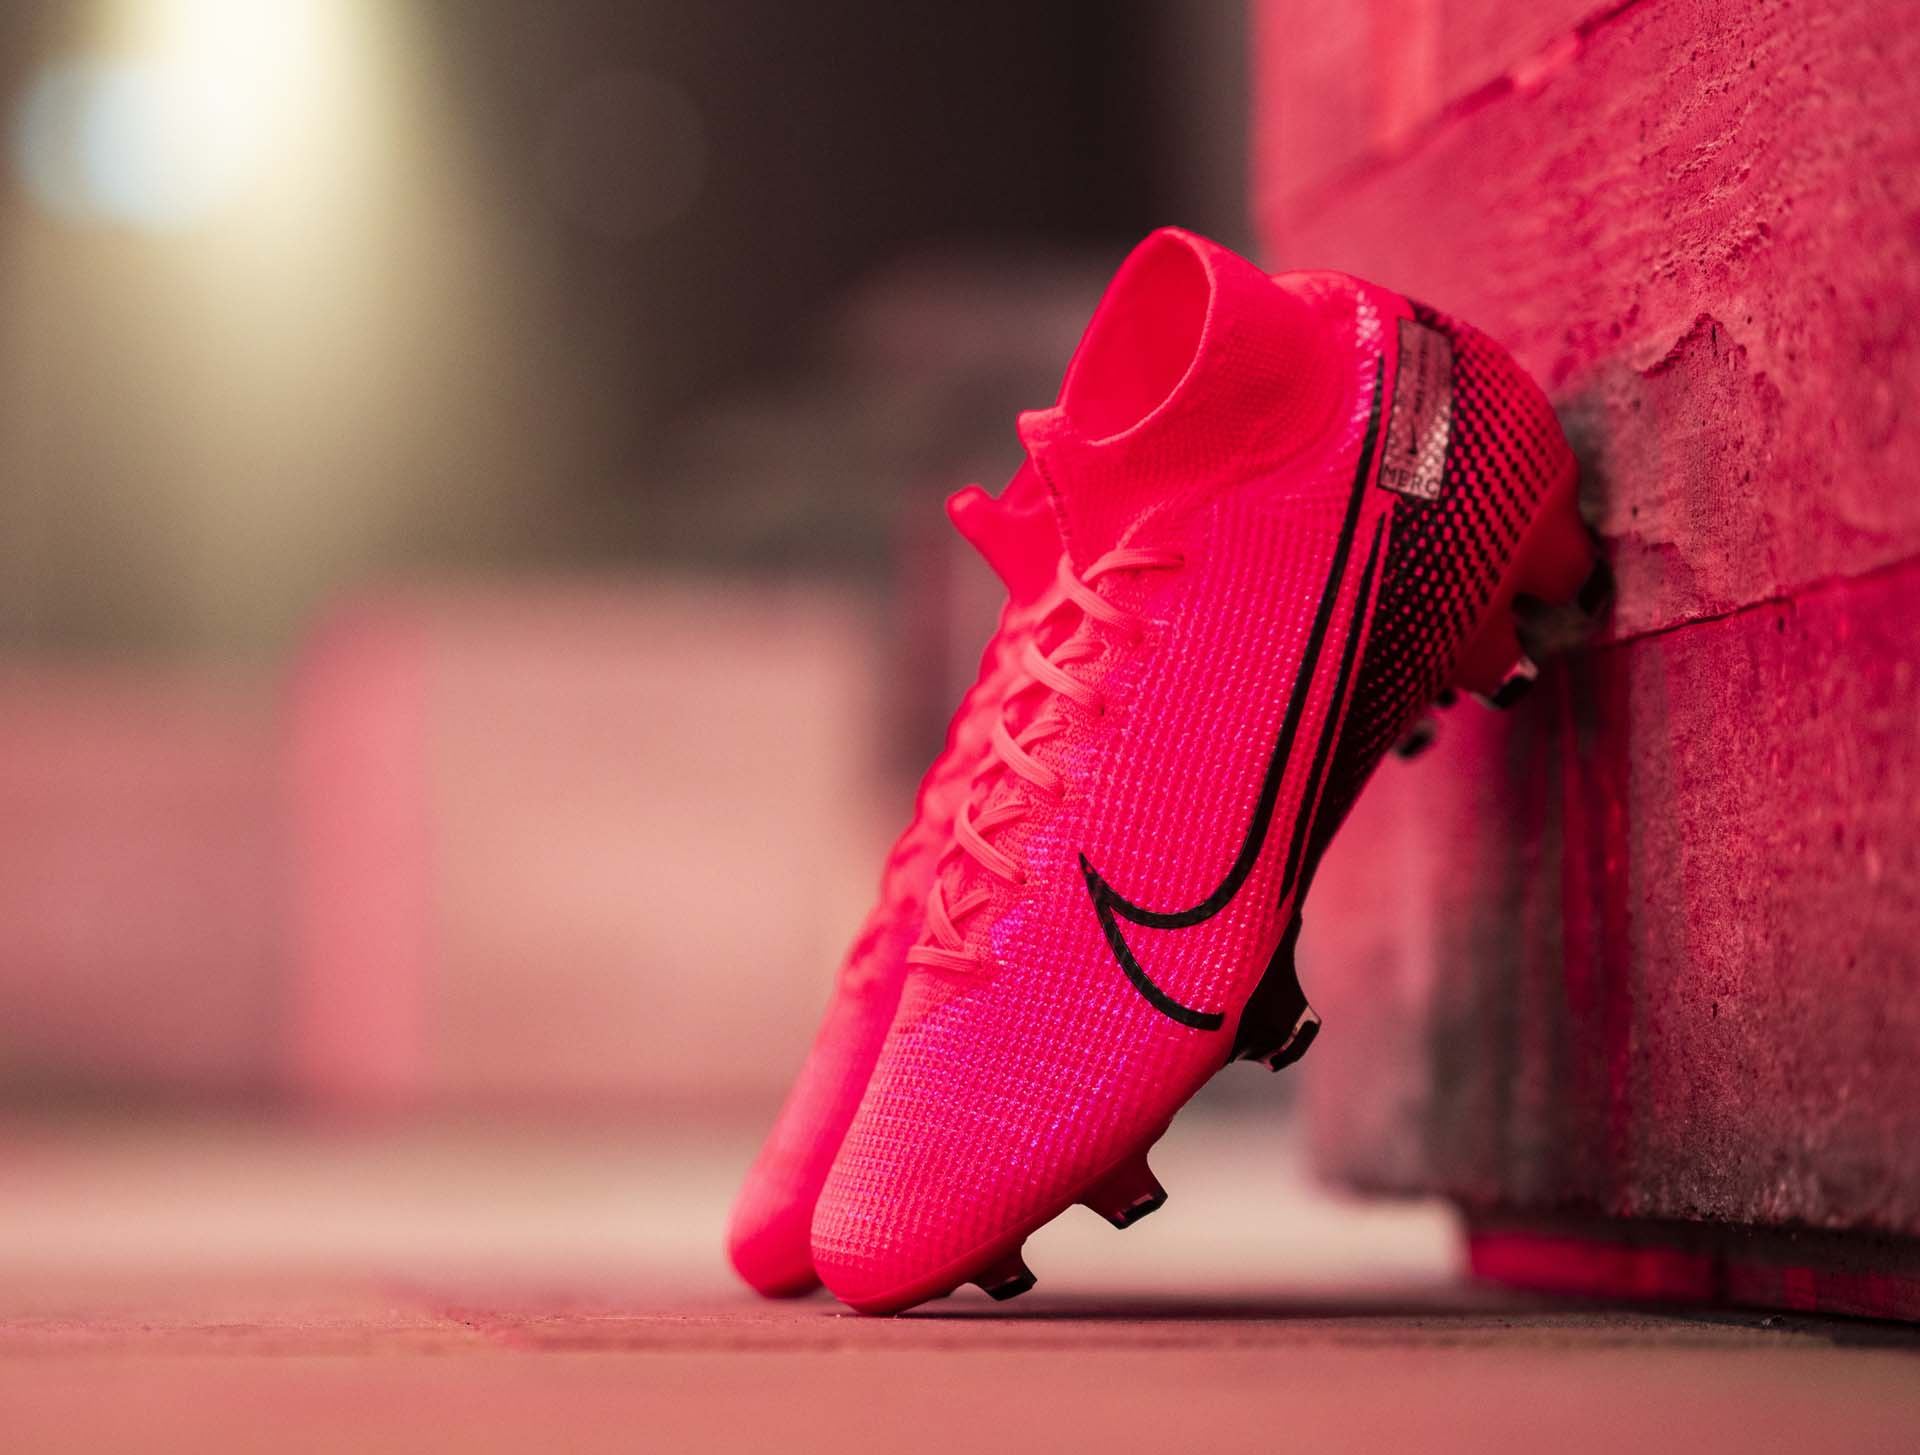 11-nike-future-lac-mercurial-collection-min.jpg